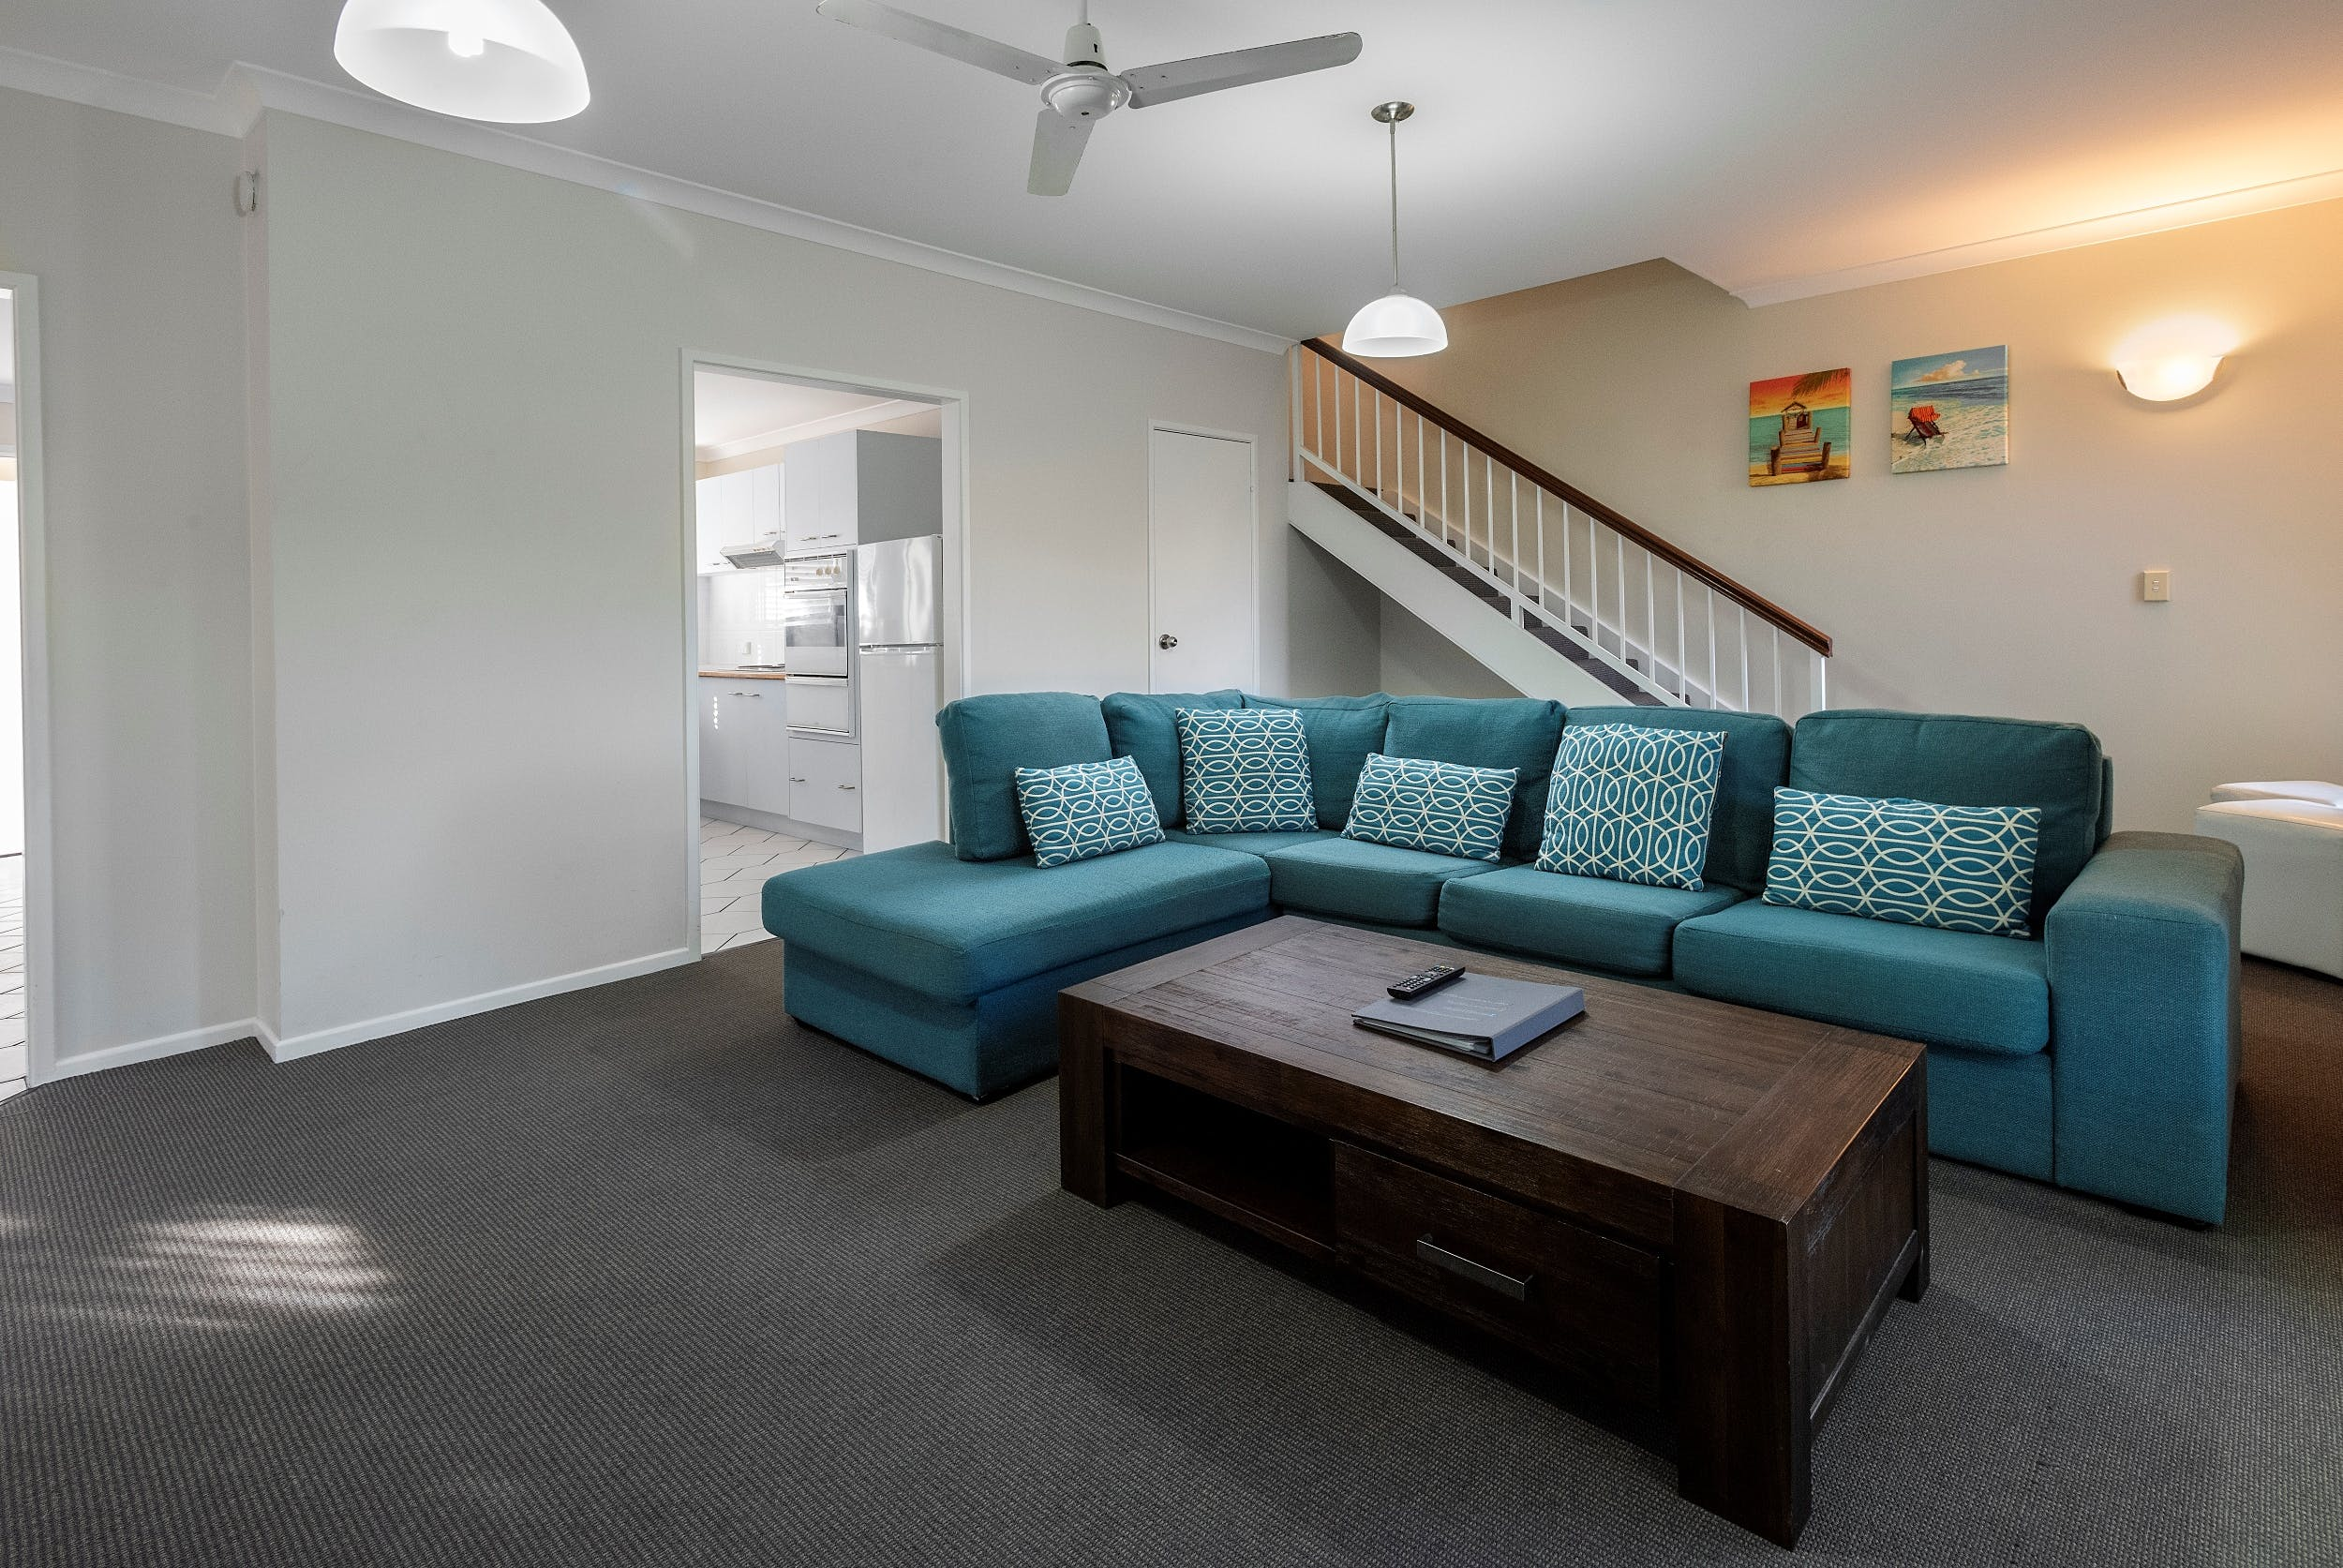 Apartments in Hervey Bay suitable for families